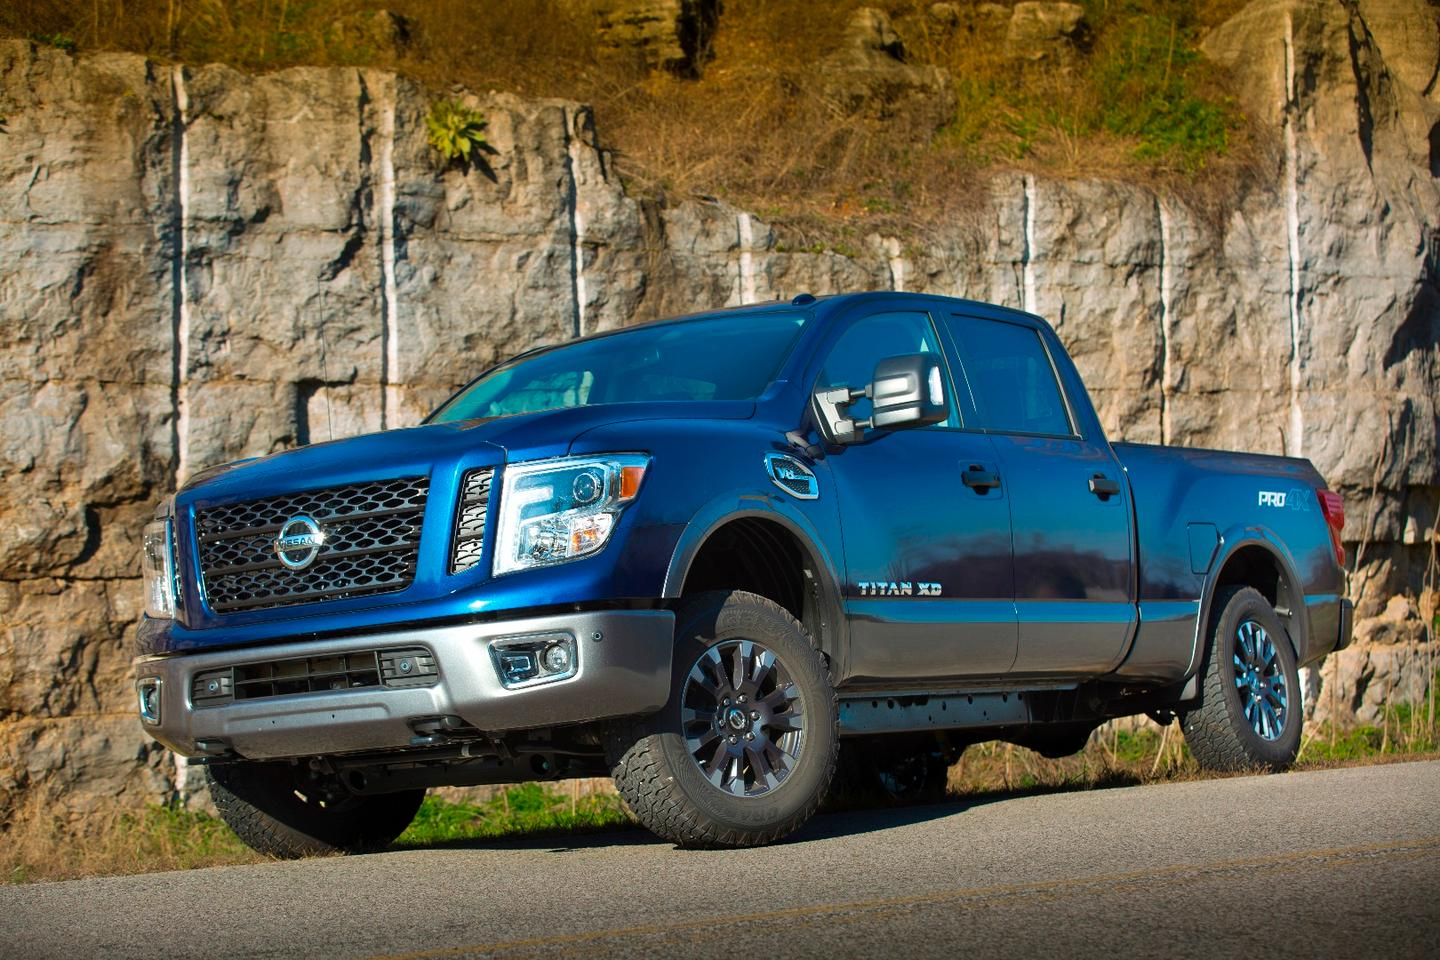 When Nissan unveiled the Titan XD with an eight-cylinder gasoline option as another heavy-duty half-ton option, our eyes widened